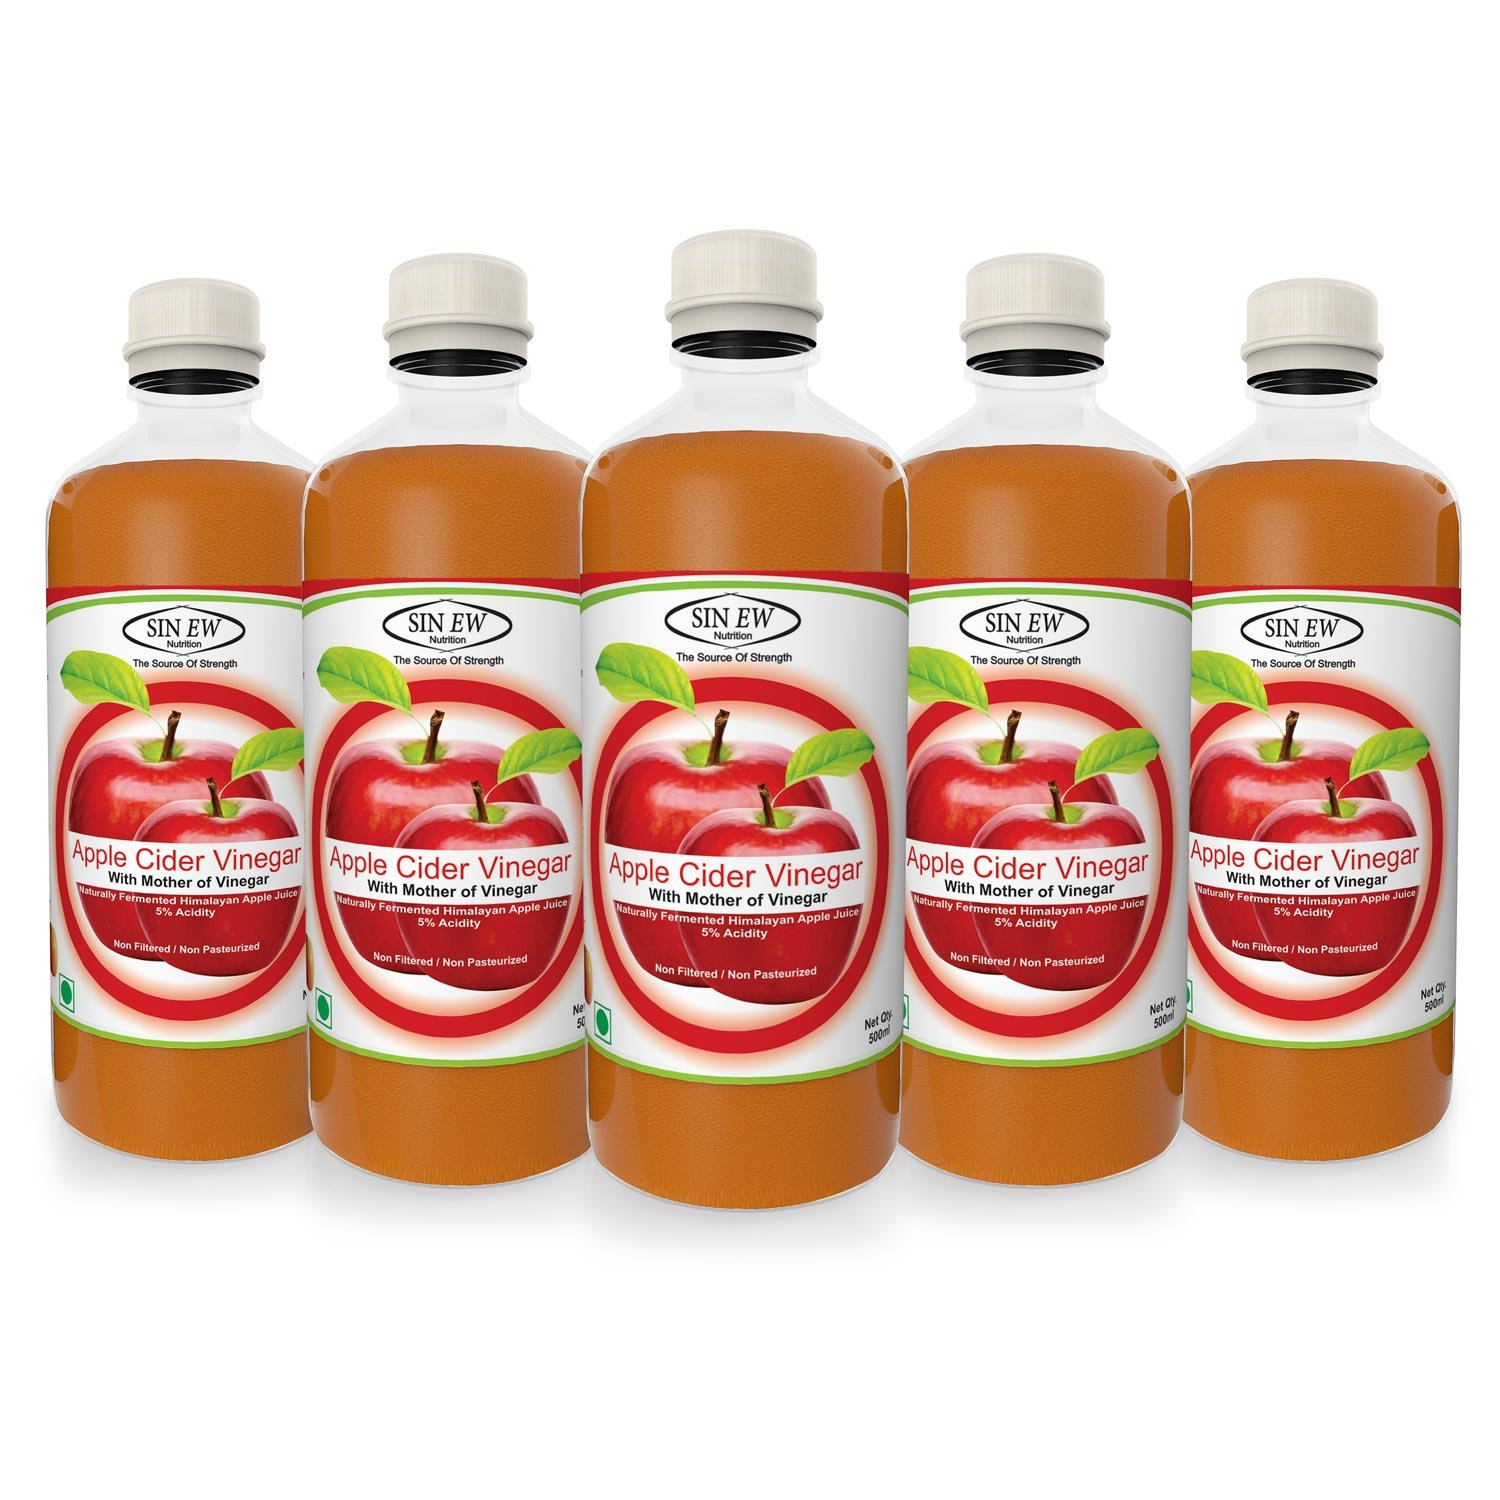 50% Off Or More Off On Groceries By Amazon | Sinew Apple Cider Vinegar With Mother of Vinegar- 500 ml Pack of 5 Unfiltered, Unpasteurised with all the natures benefits @ Rs.949